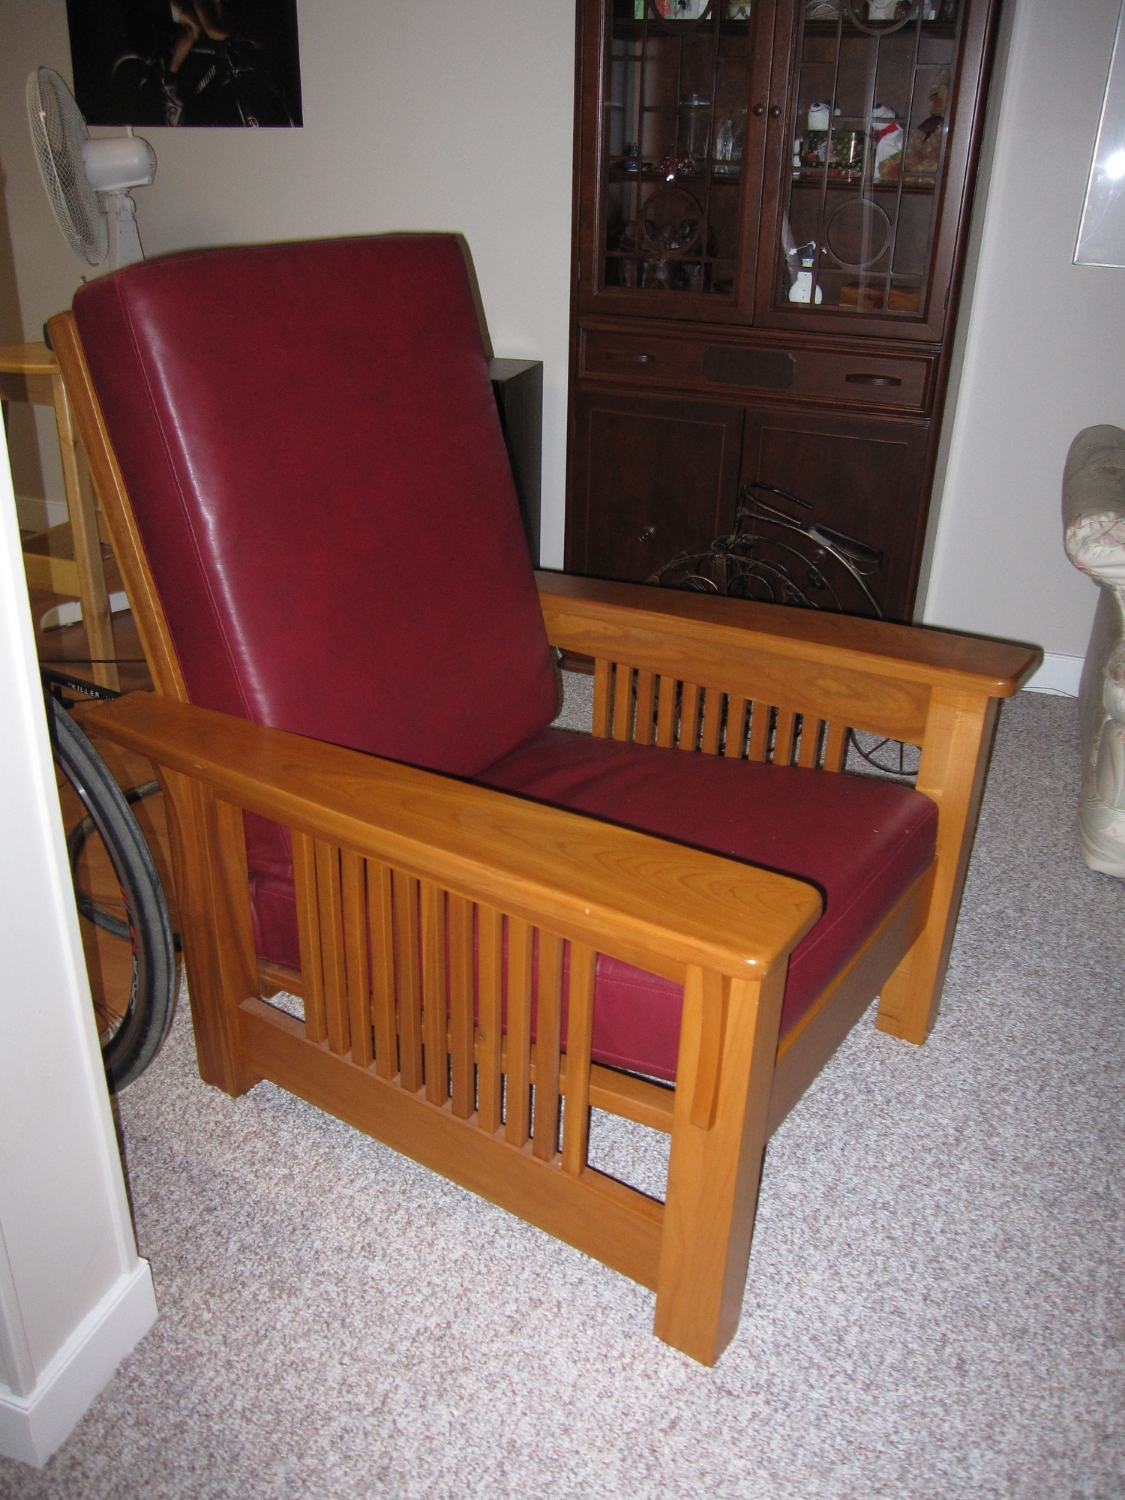 Mission-style chair in cherry